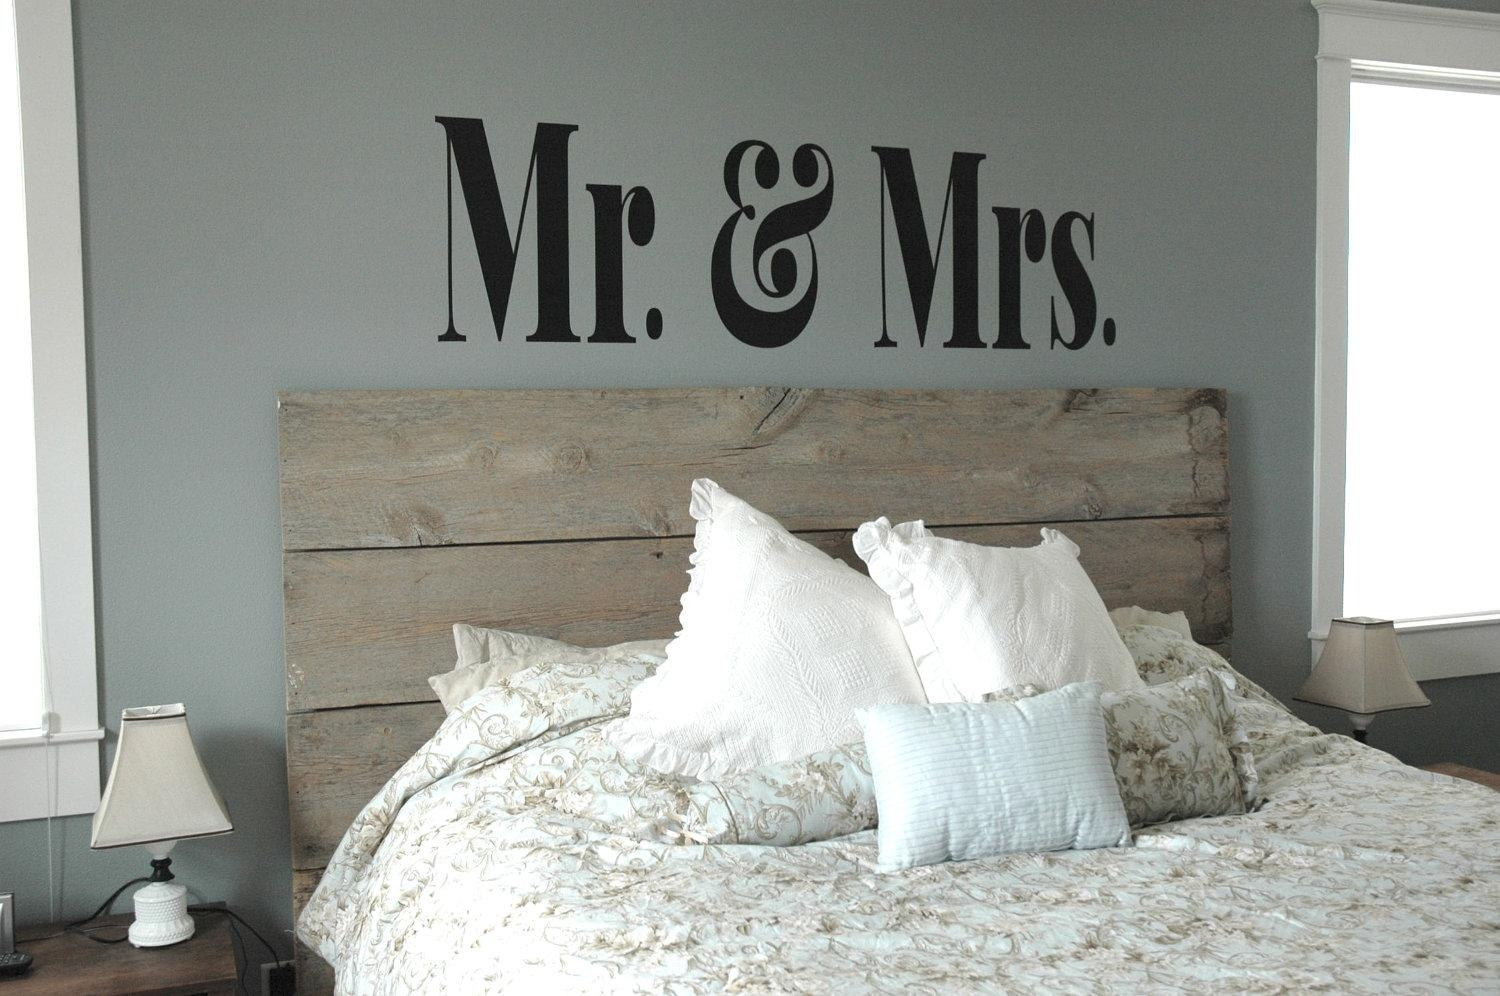 Xl Mr & Mrs Vinyl Decal Master Bedroom Decor Modern throughout Mr and Mrs Wall Art